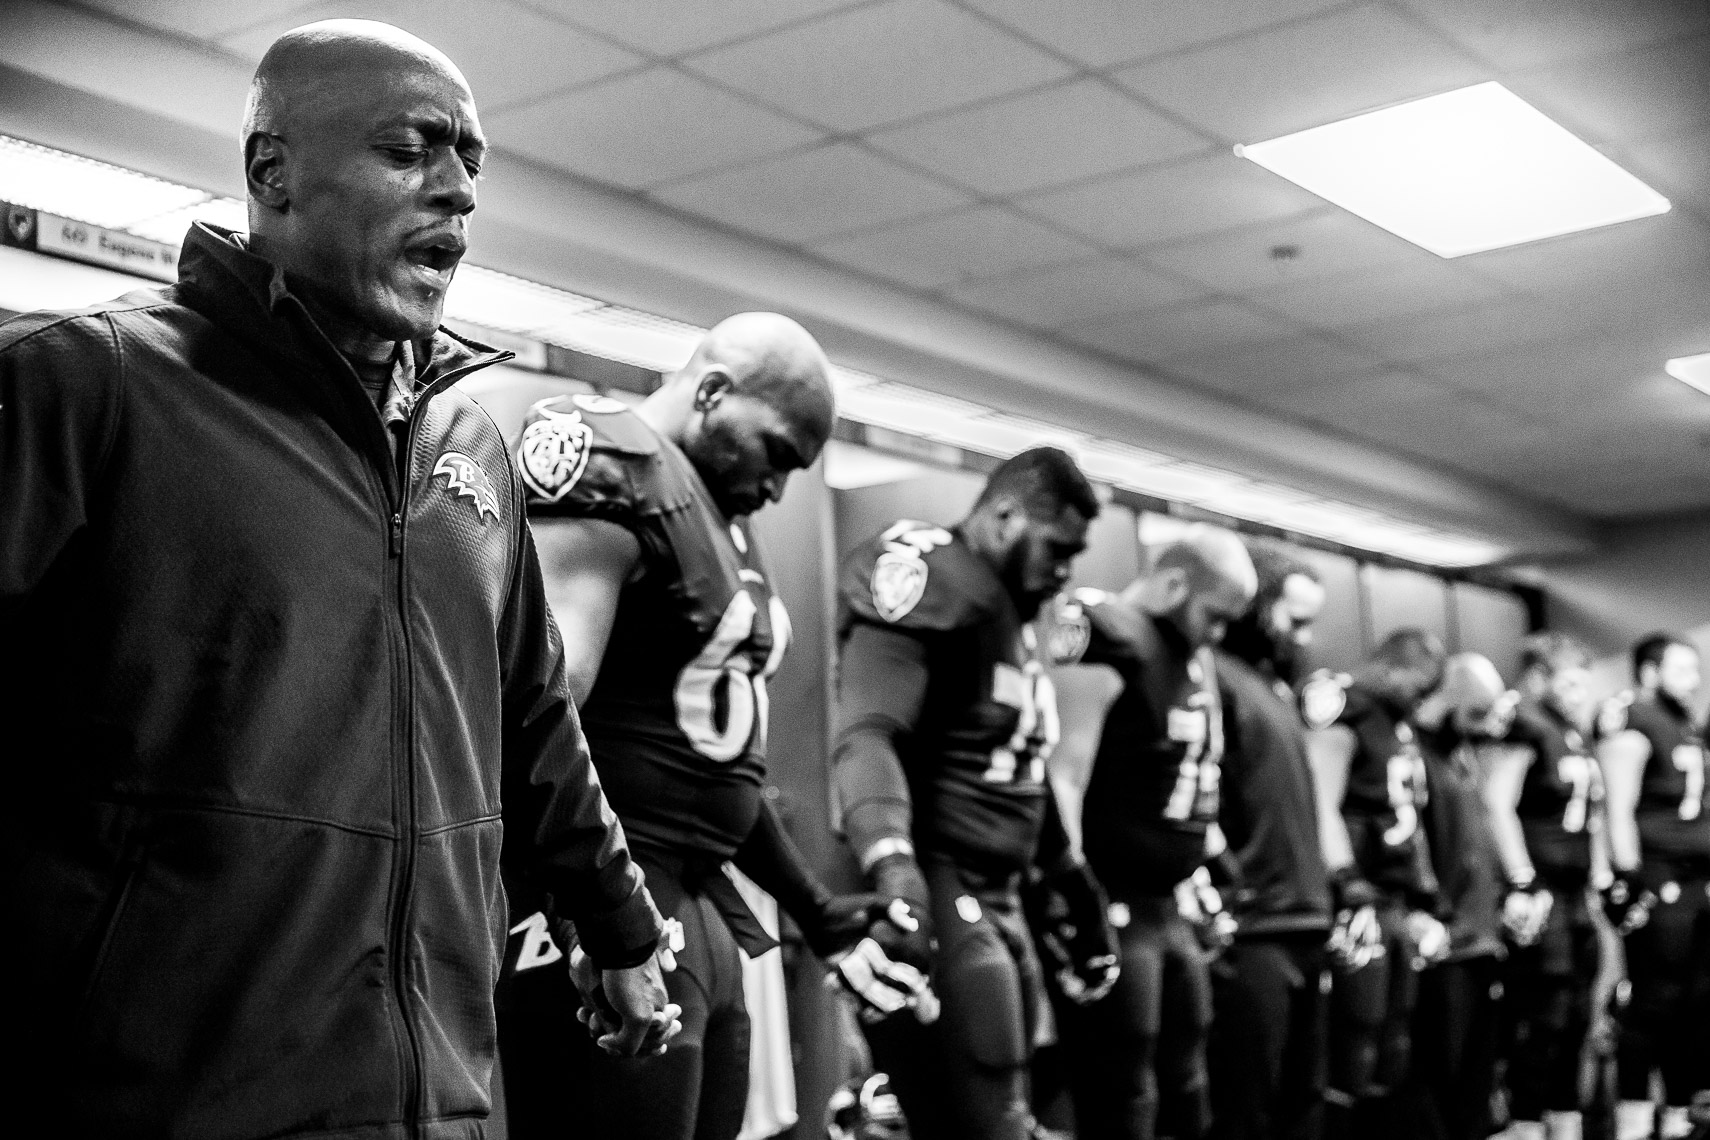 teamchaplain02_ NFL behind the scenes Baltimore Ravens team chaplain Johnny Shelton by Baltimore  area photojournalist reportage documentary sports photographer